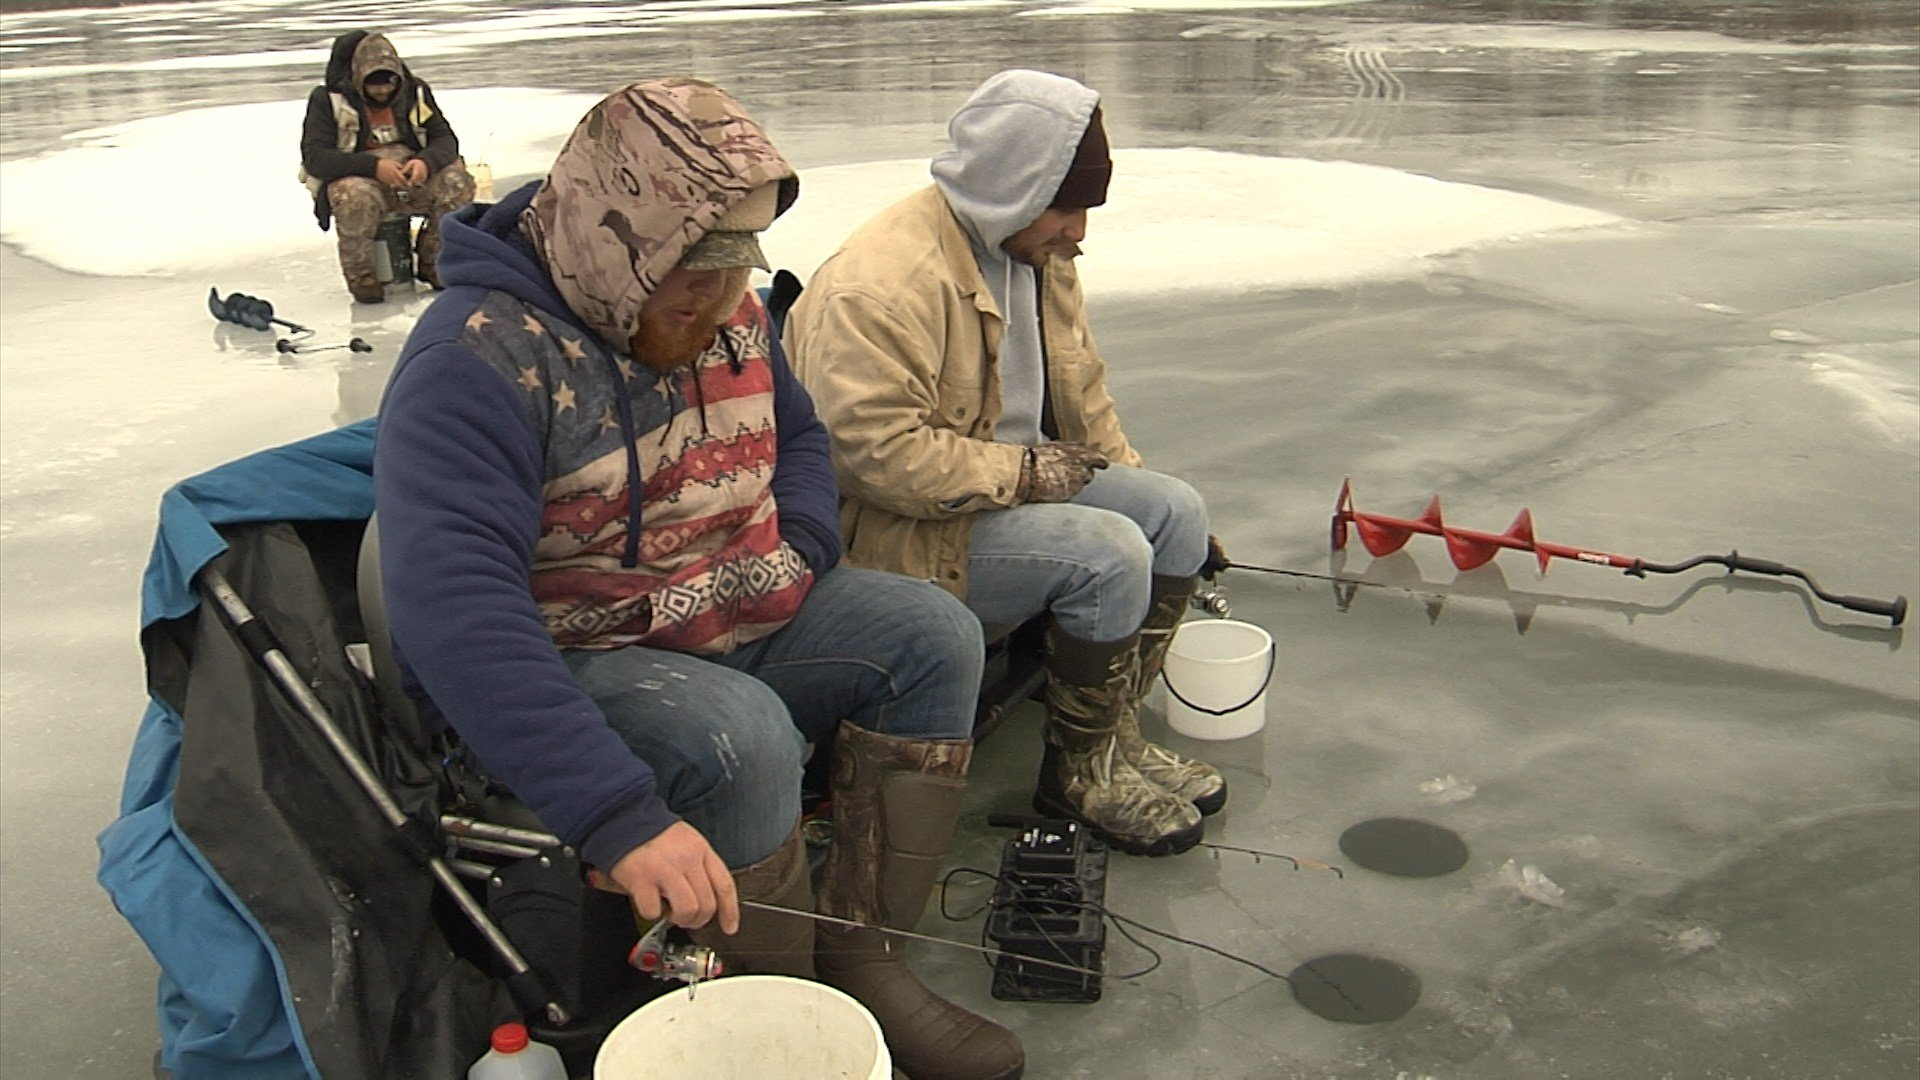 Ice fishing underway on misery bay erie news now wicu for Pa ice fishing